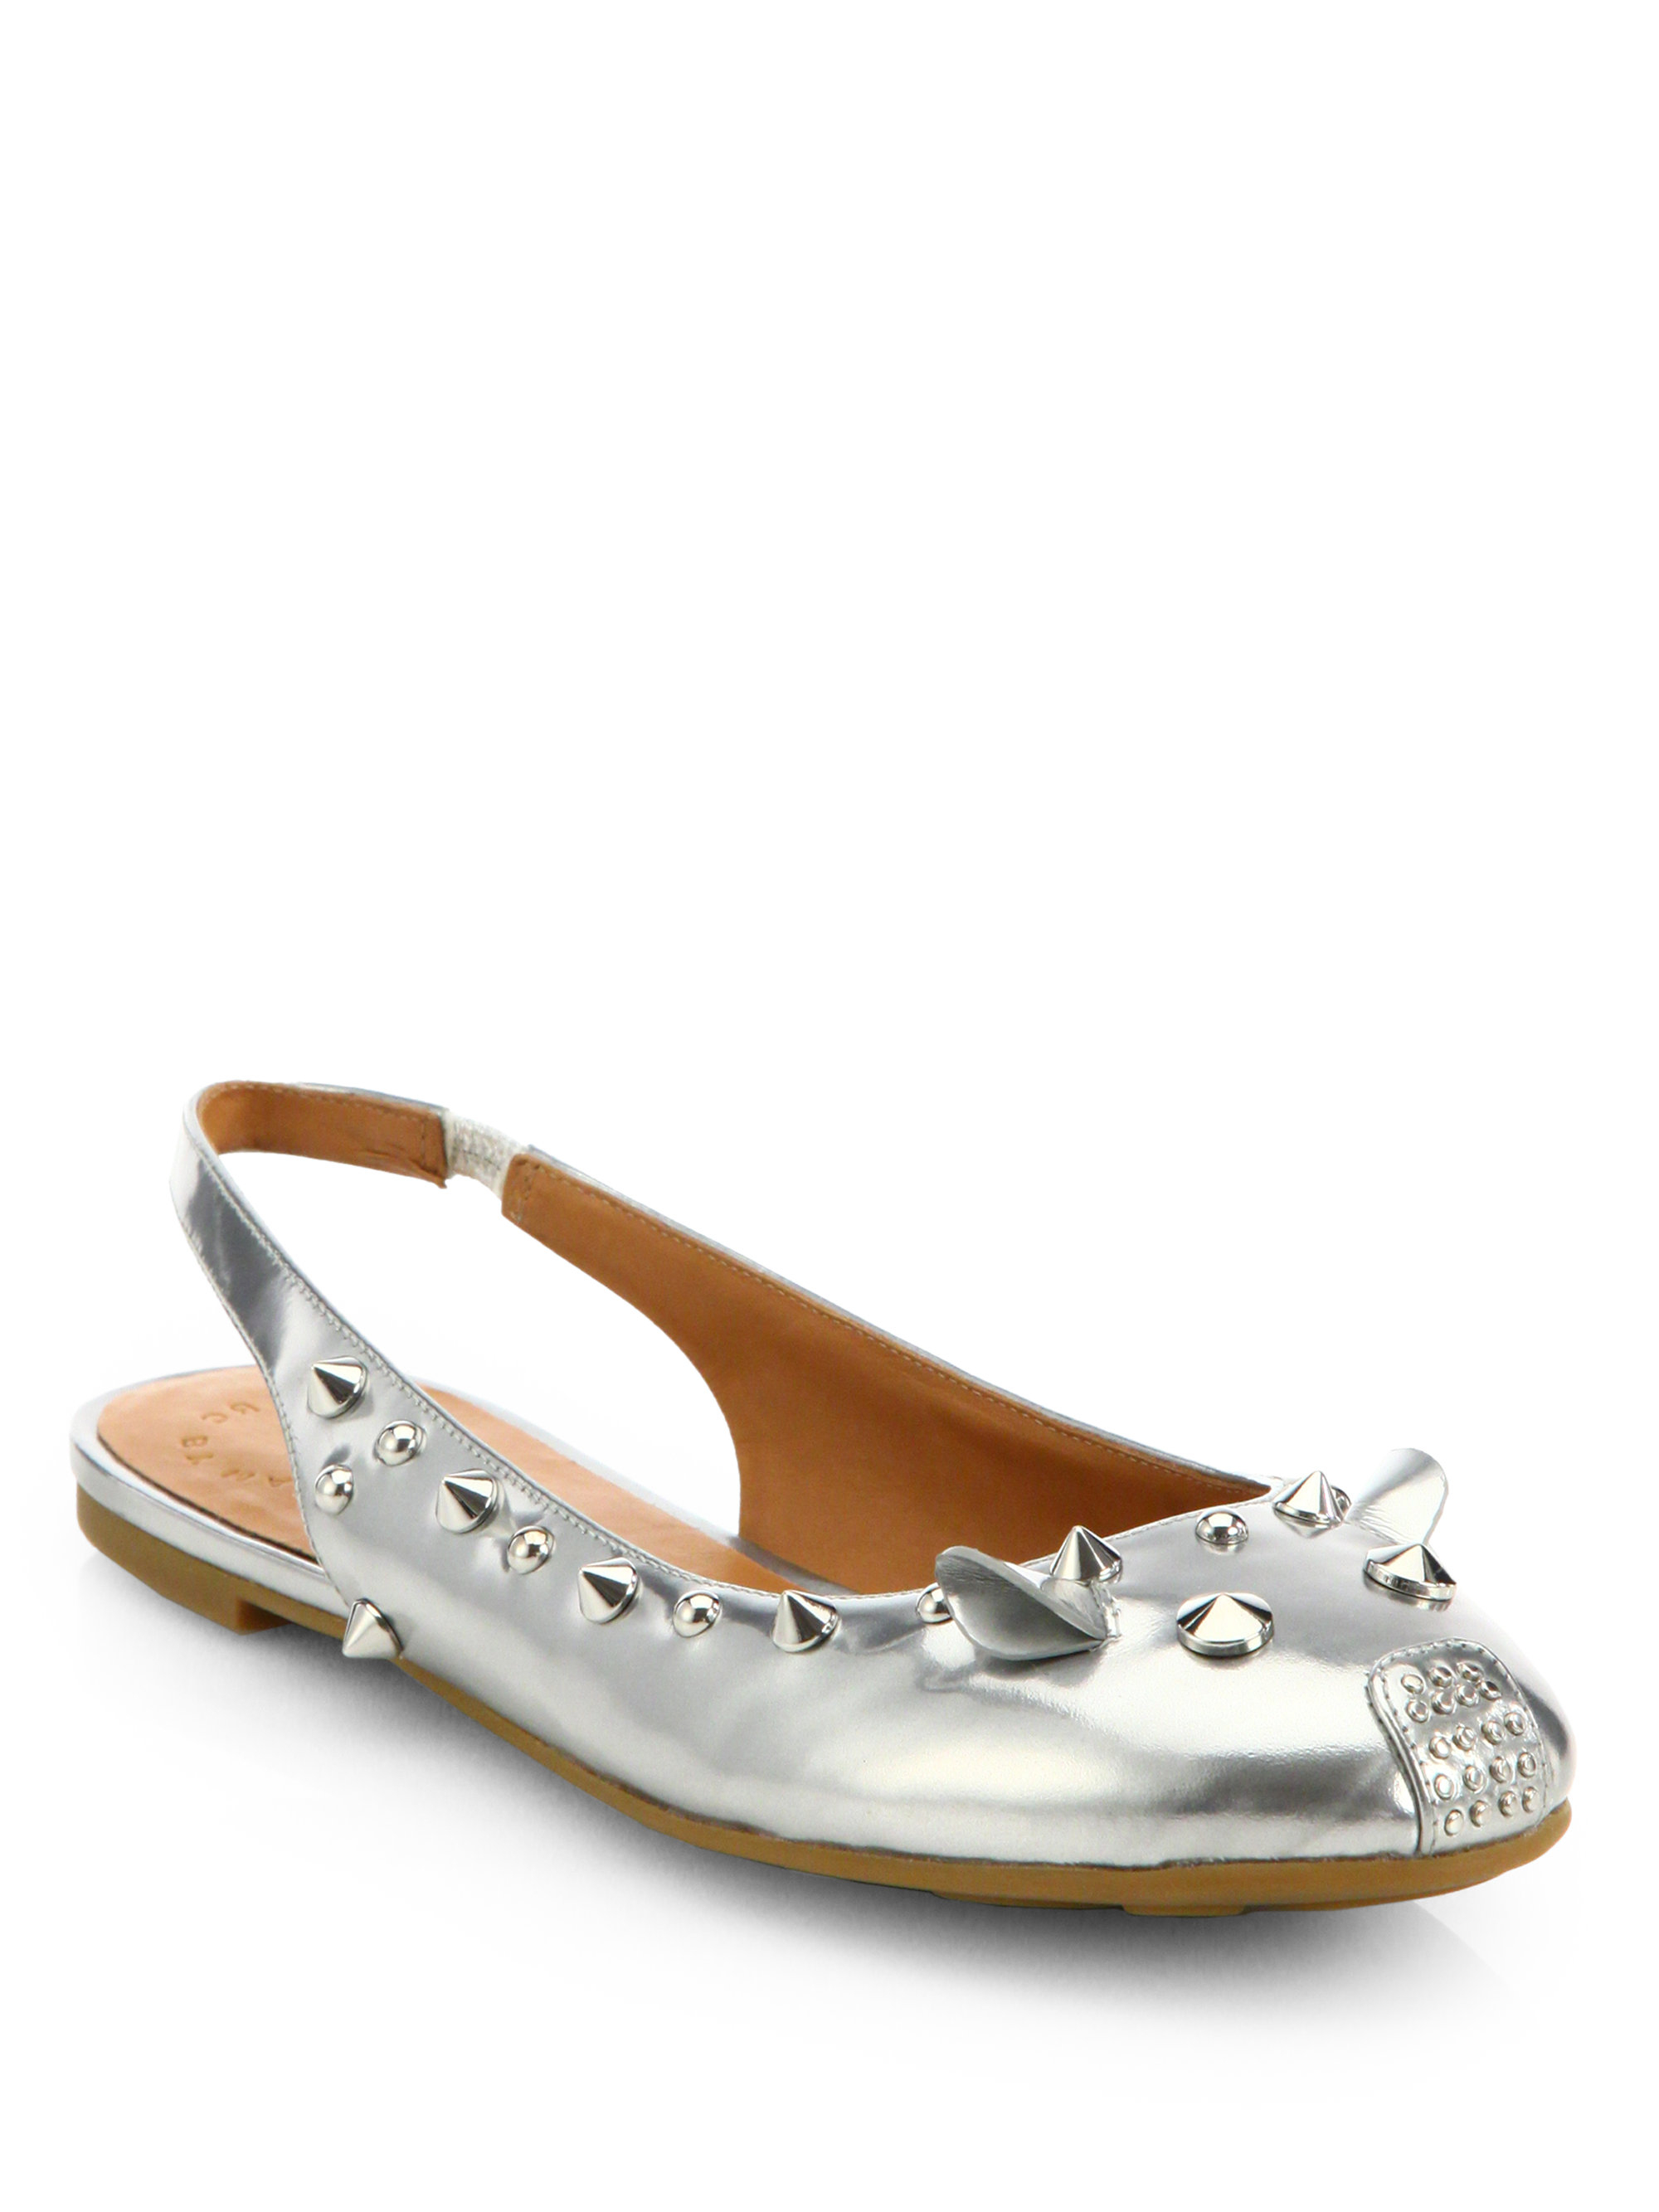 sale discounts sale extremely Marc Jacobs Metallic Slingback Sandals shopping online cheap online 51ESV